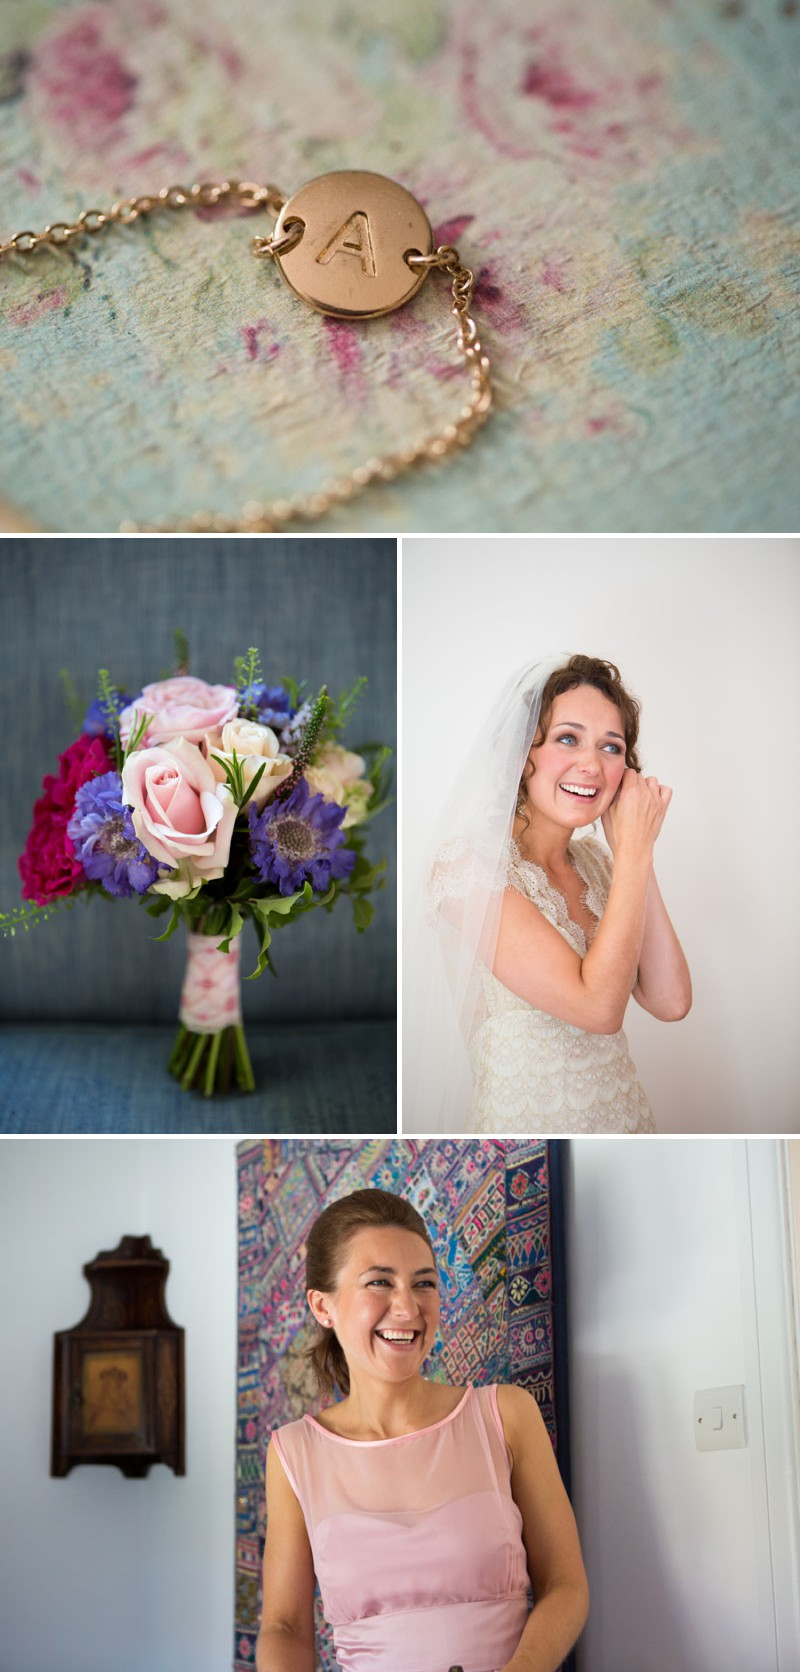 A Fusion Welsh Greek Cypriot Wedding With A Claire Pettibone Dress And A Colour Pop Bouquet By Lily & Frank Photography._0001